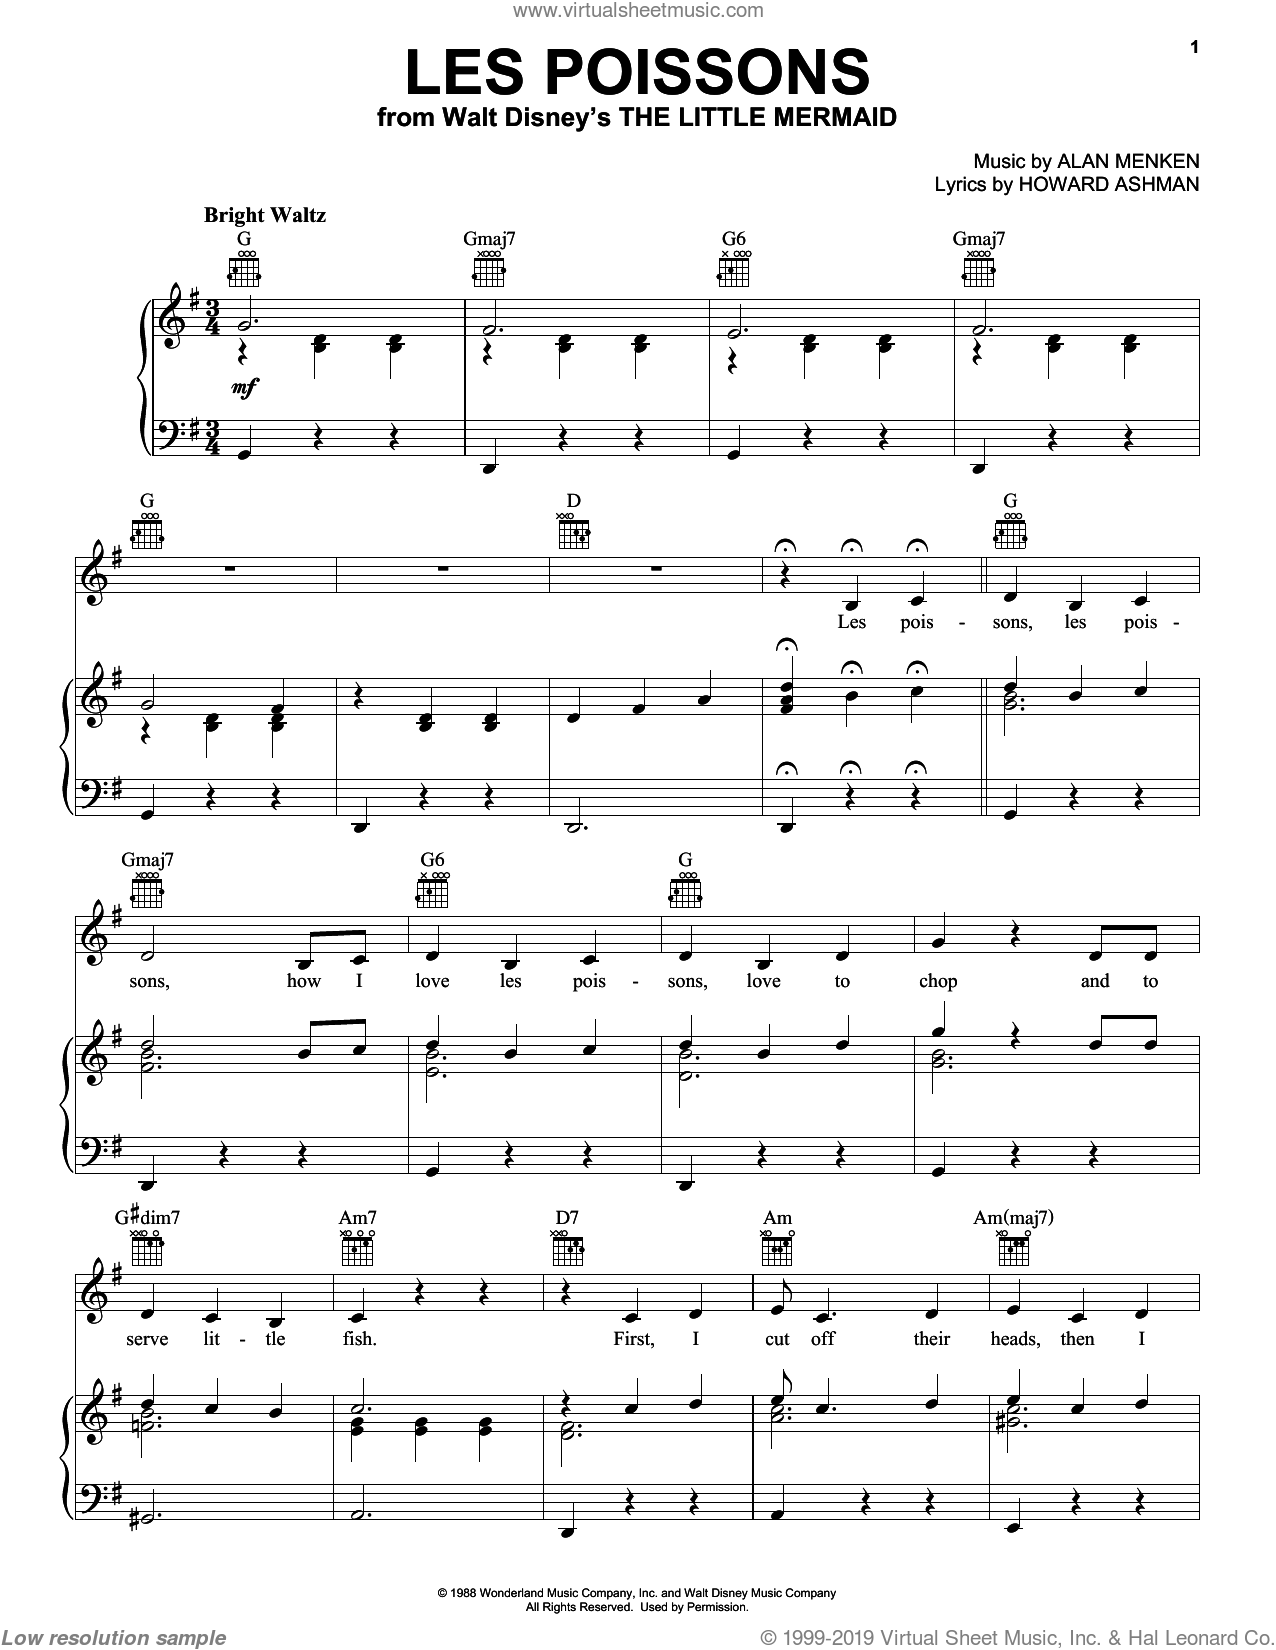 Les Poissons (from The Little Mermaid) sheet music for voice, piano or guitar by Alan Menken, The Little Mermaid (Movie) and Howard Ashman, intermediate skill level